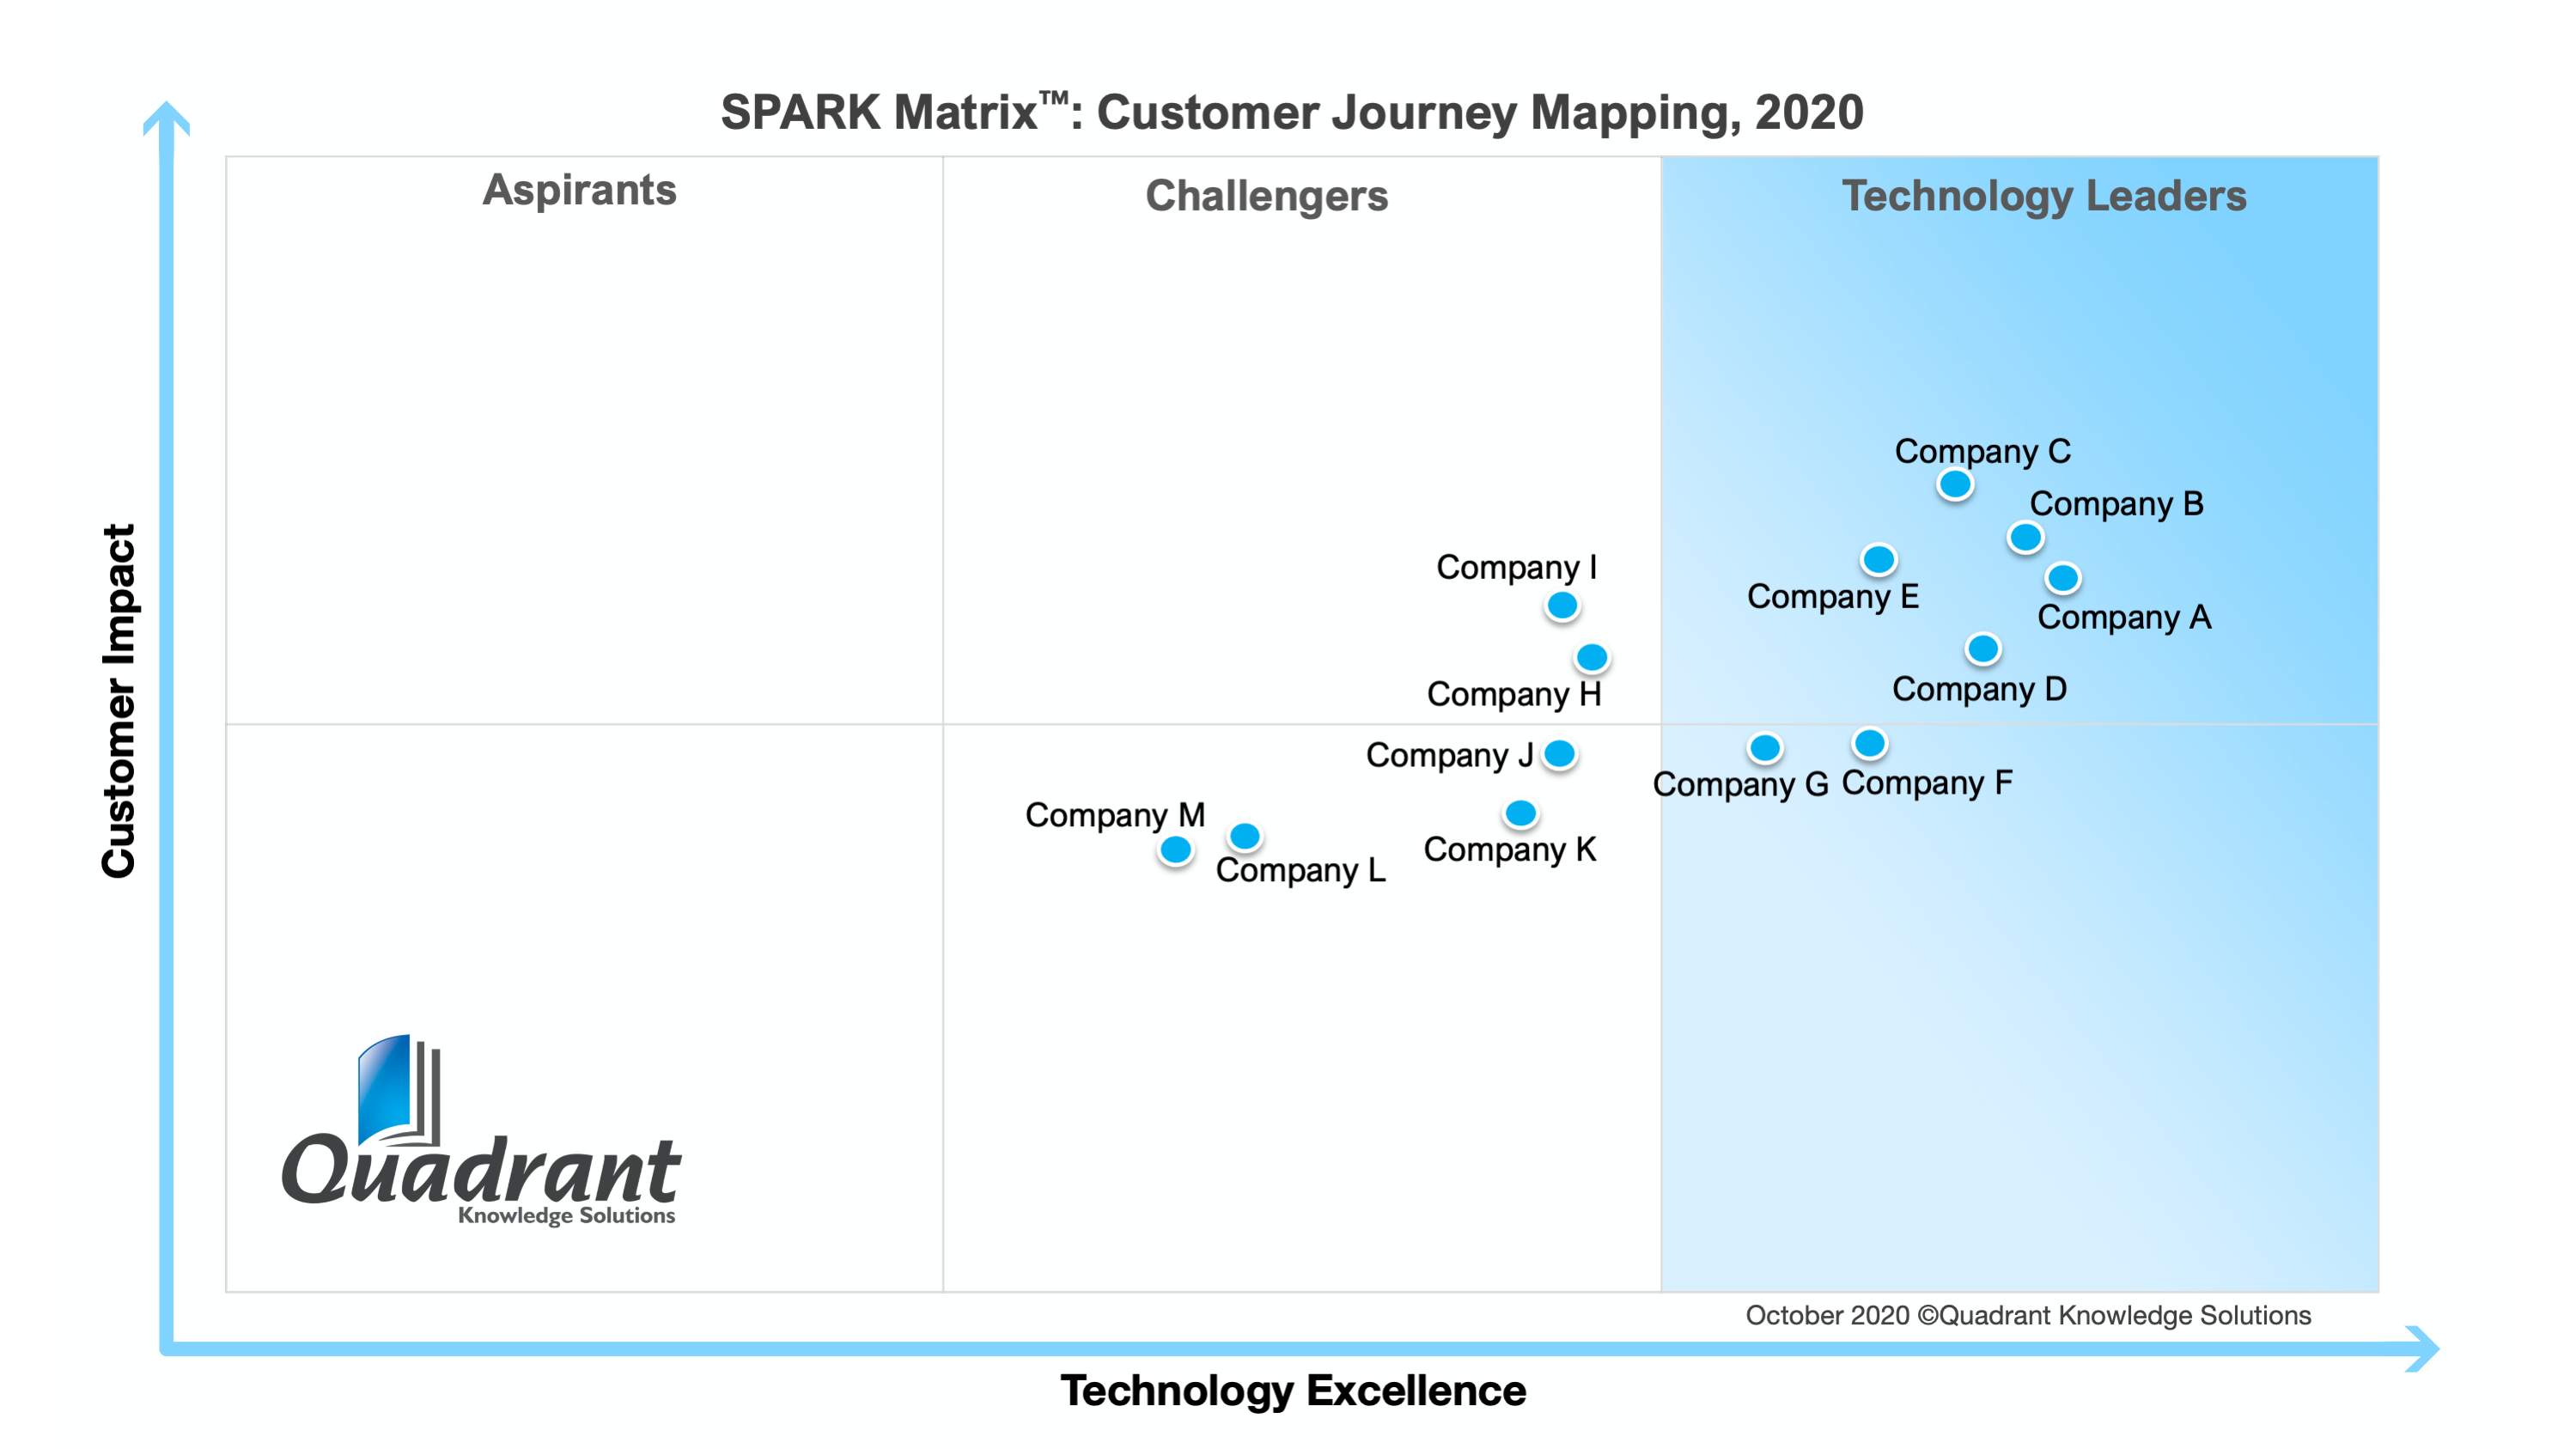 2020 SPARK Matrix Customer Journey Mapping Quadrant Knowledge Solutions